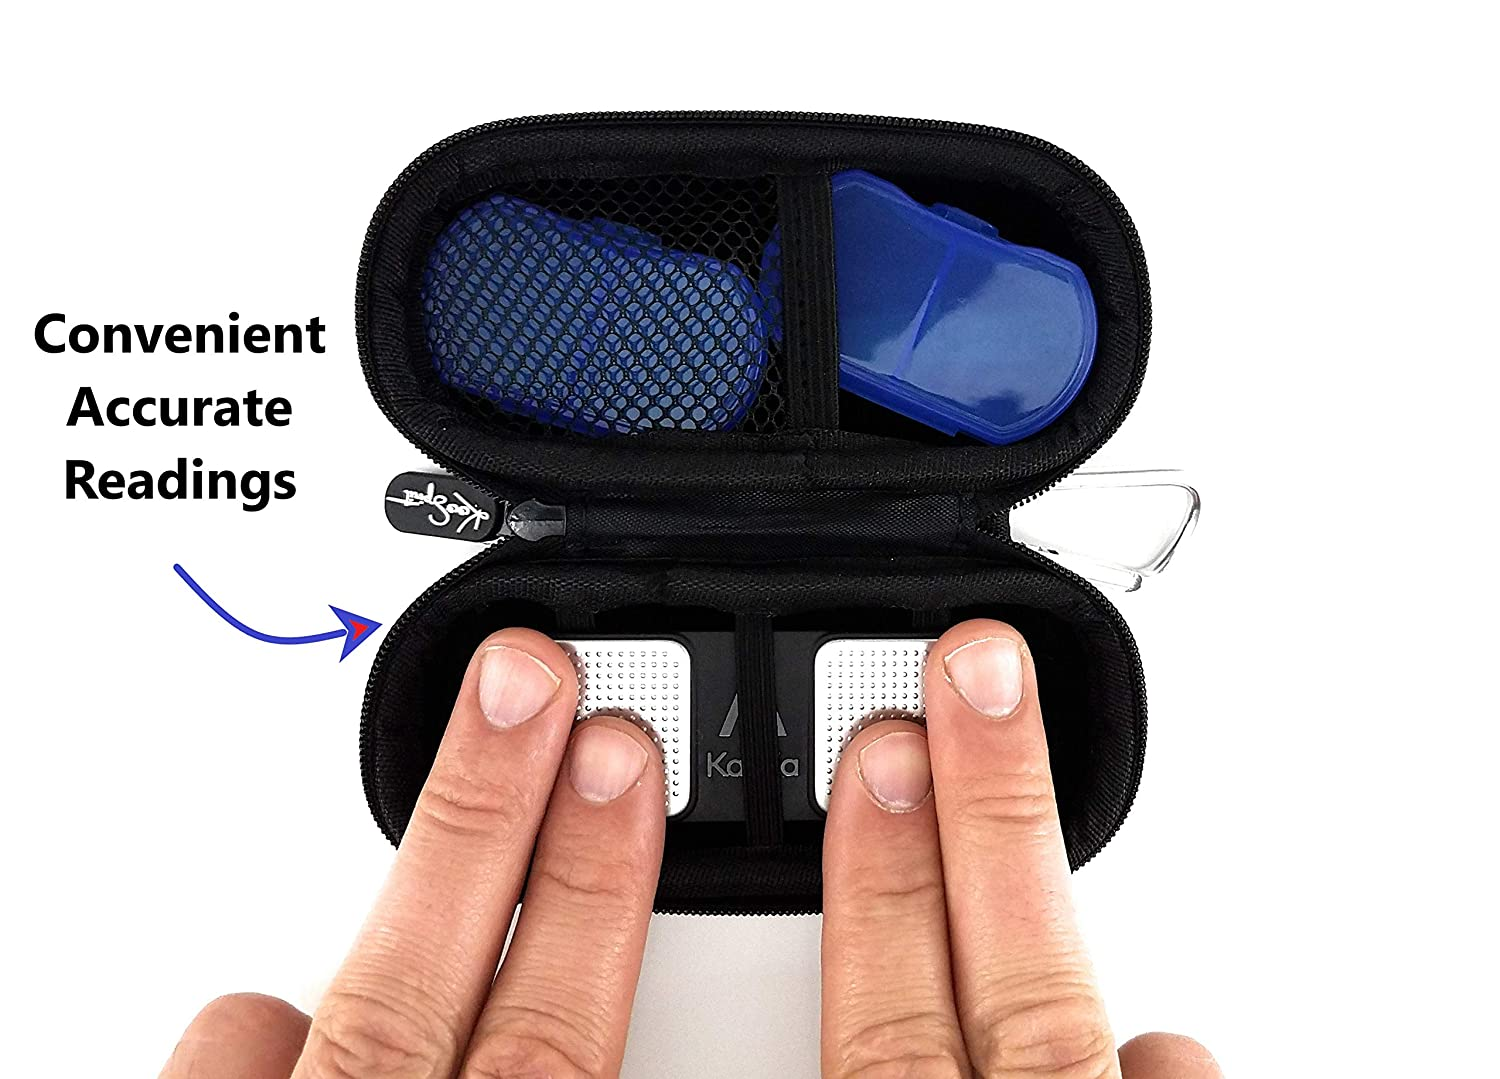 Carry Case For the Alivecor Kardia Mobile EKG Home Heart Monitor Health Machine|Portable Travel on the go Safety Includes a Velvet Protective Pouch with Extra Day /& Night Pill Organizers By KooSpirit